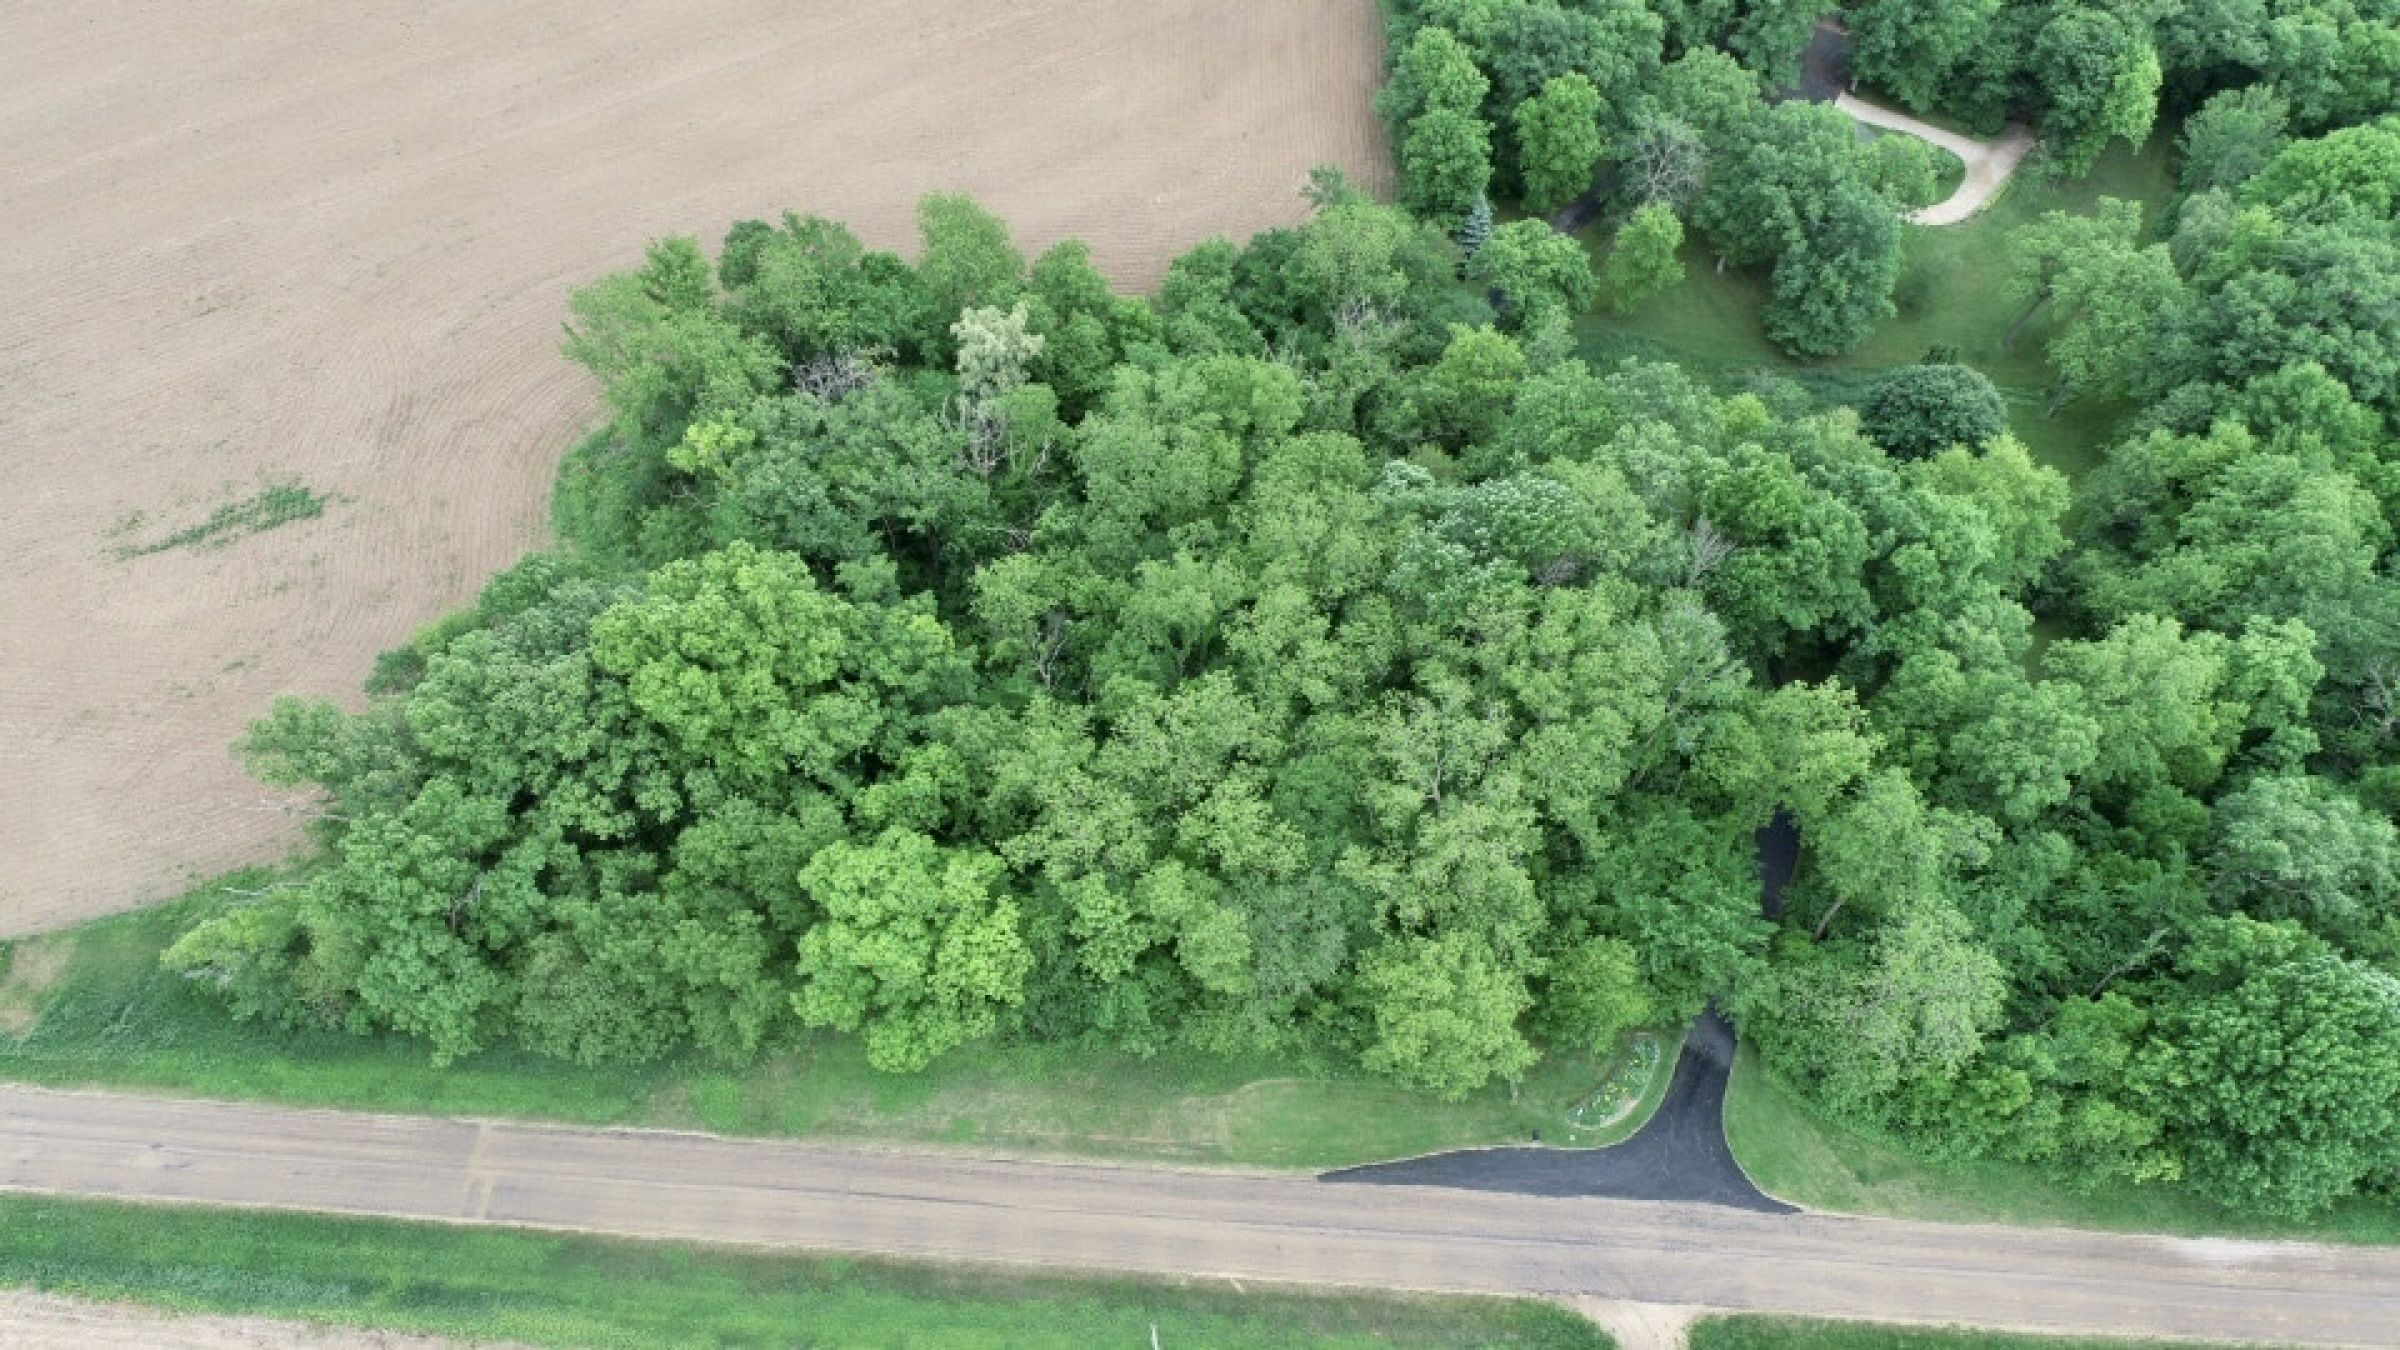 land-lafayette-county-wisconsin-1-acres-listing-number-15559-5-2021-05-28-184446.jpg